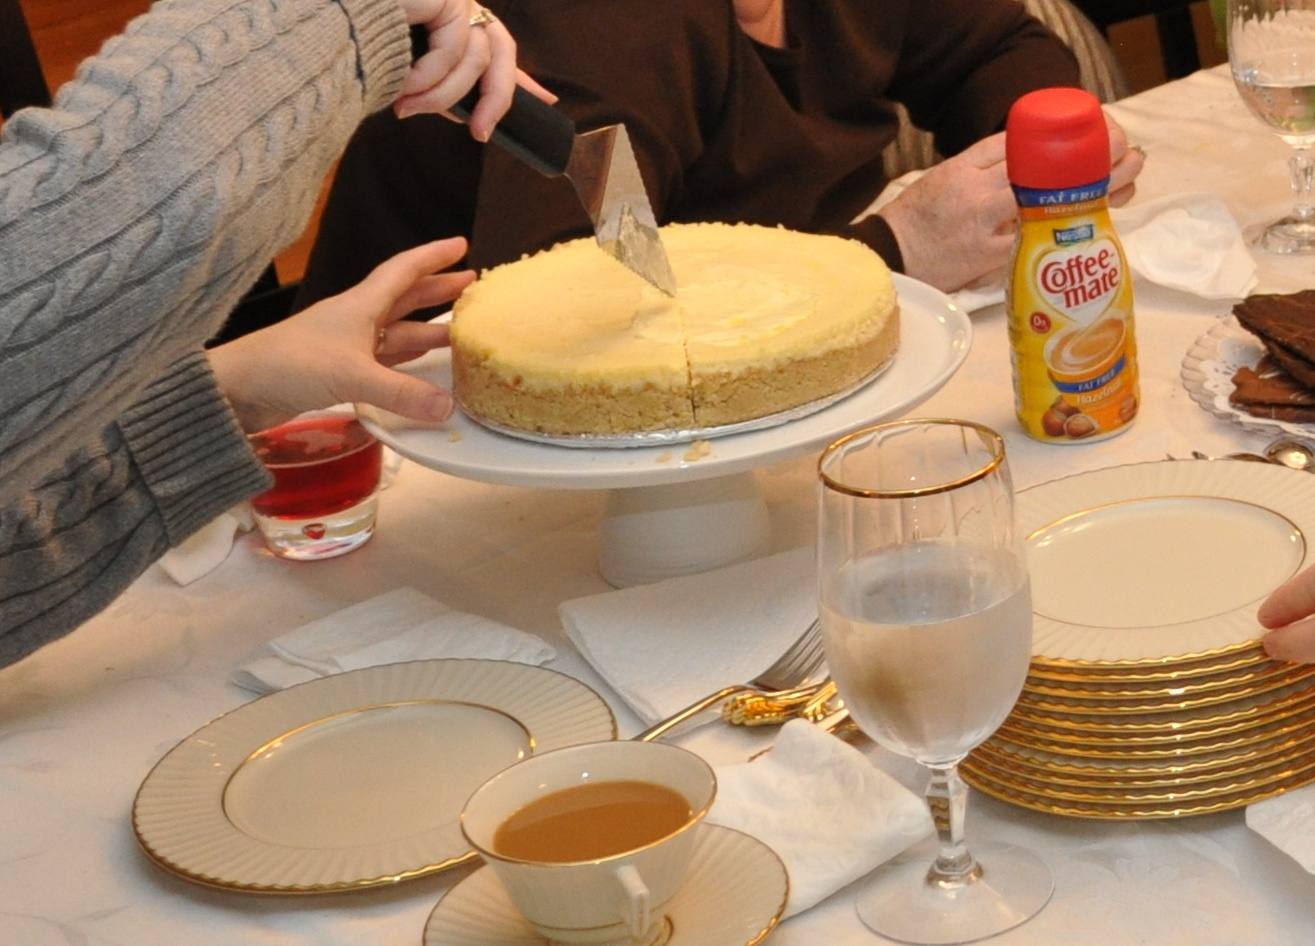 famfriendsfood: Passover Lemon Cheesecake & Seder